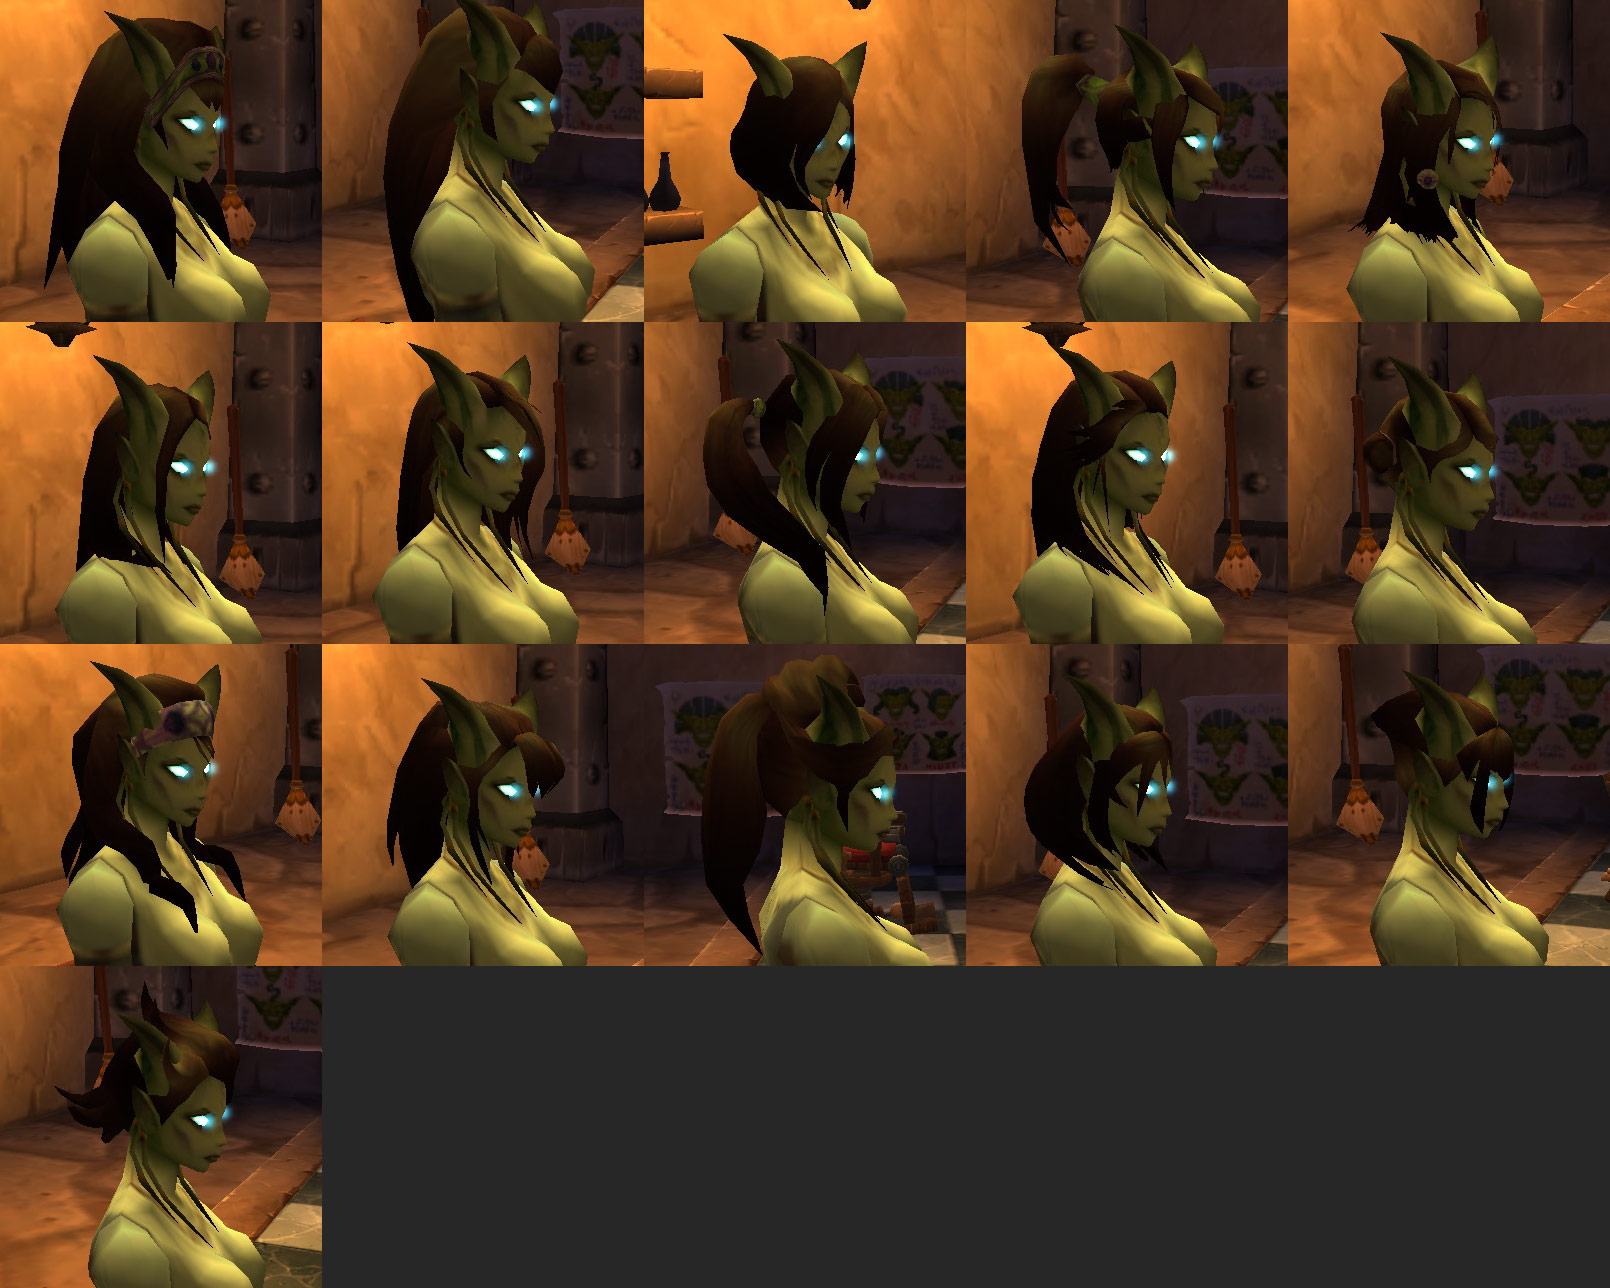 World of warcraft porn gallery naked pic